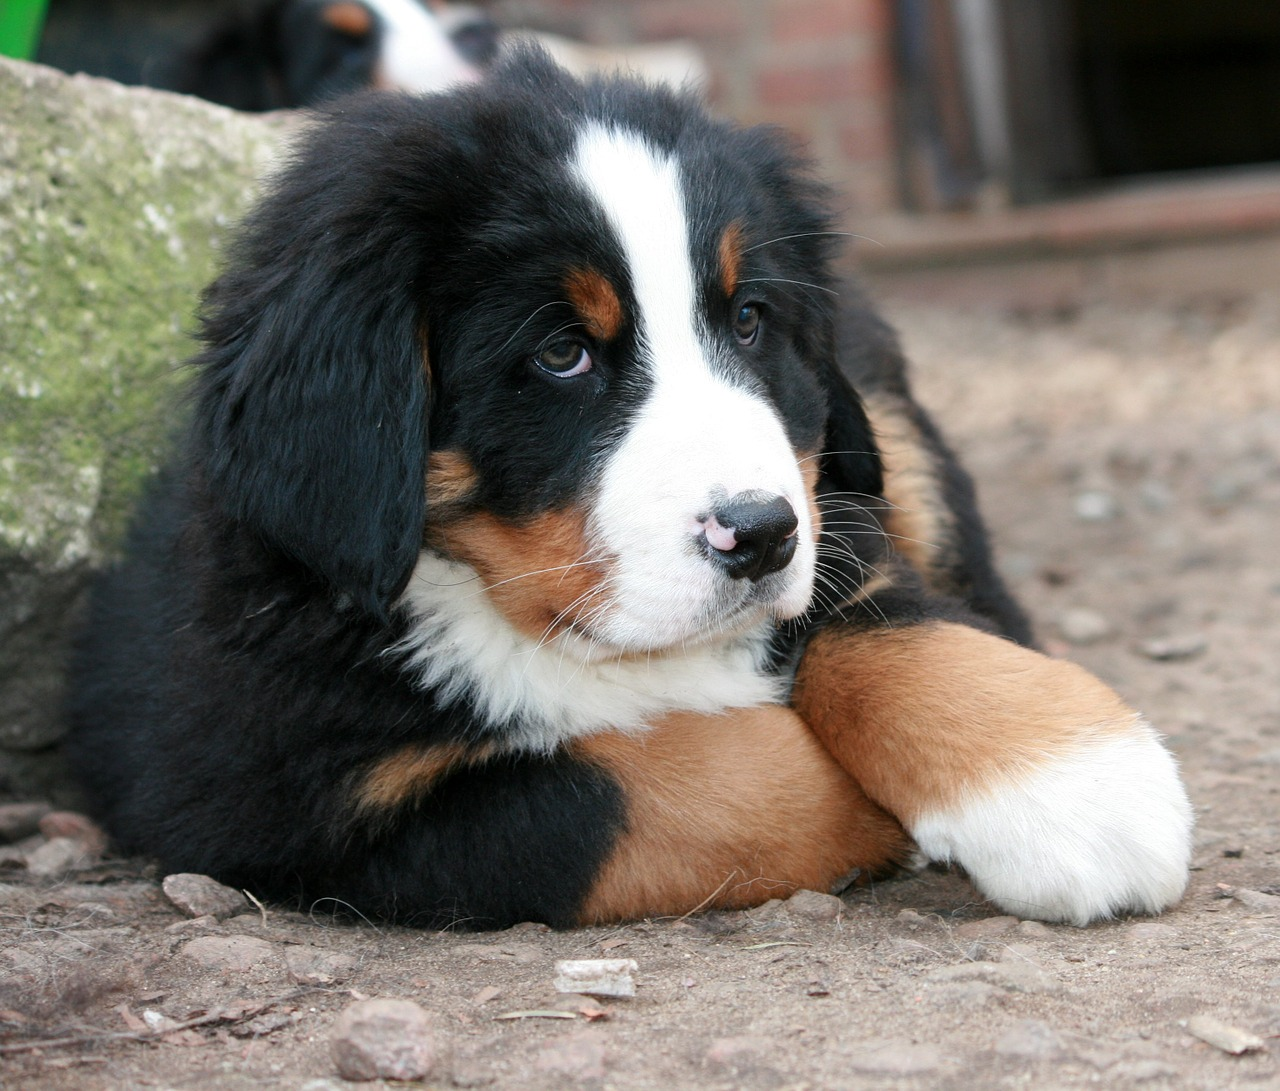 Puppybernese Mountain Dogbernerfree Pictures Free Photos Free